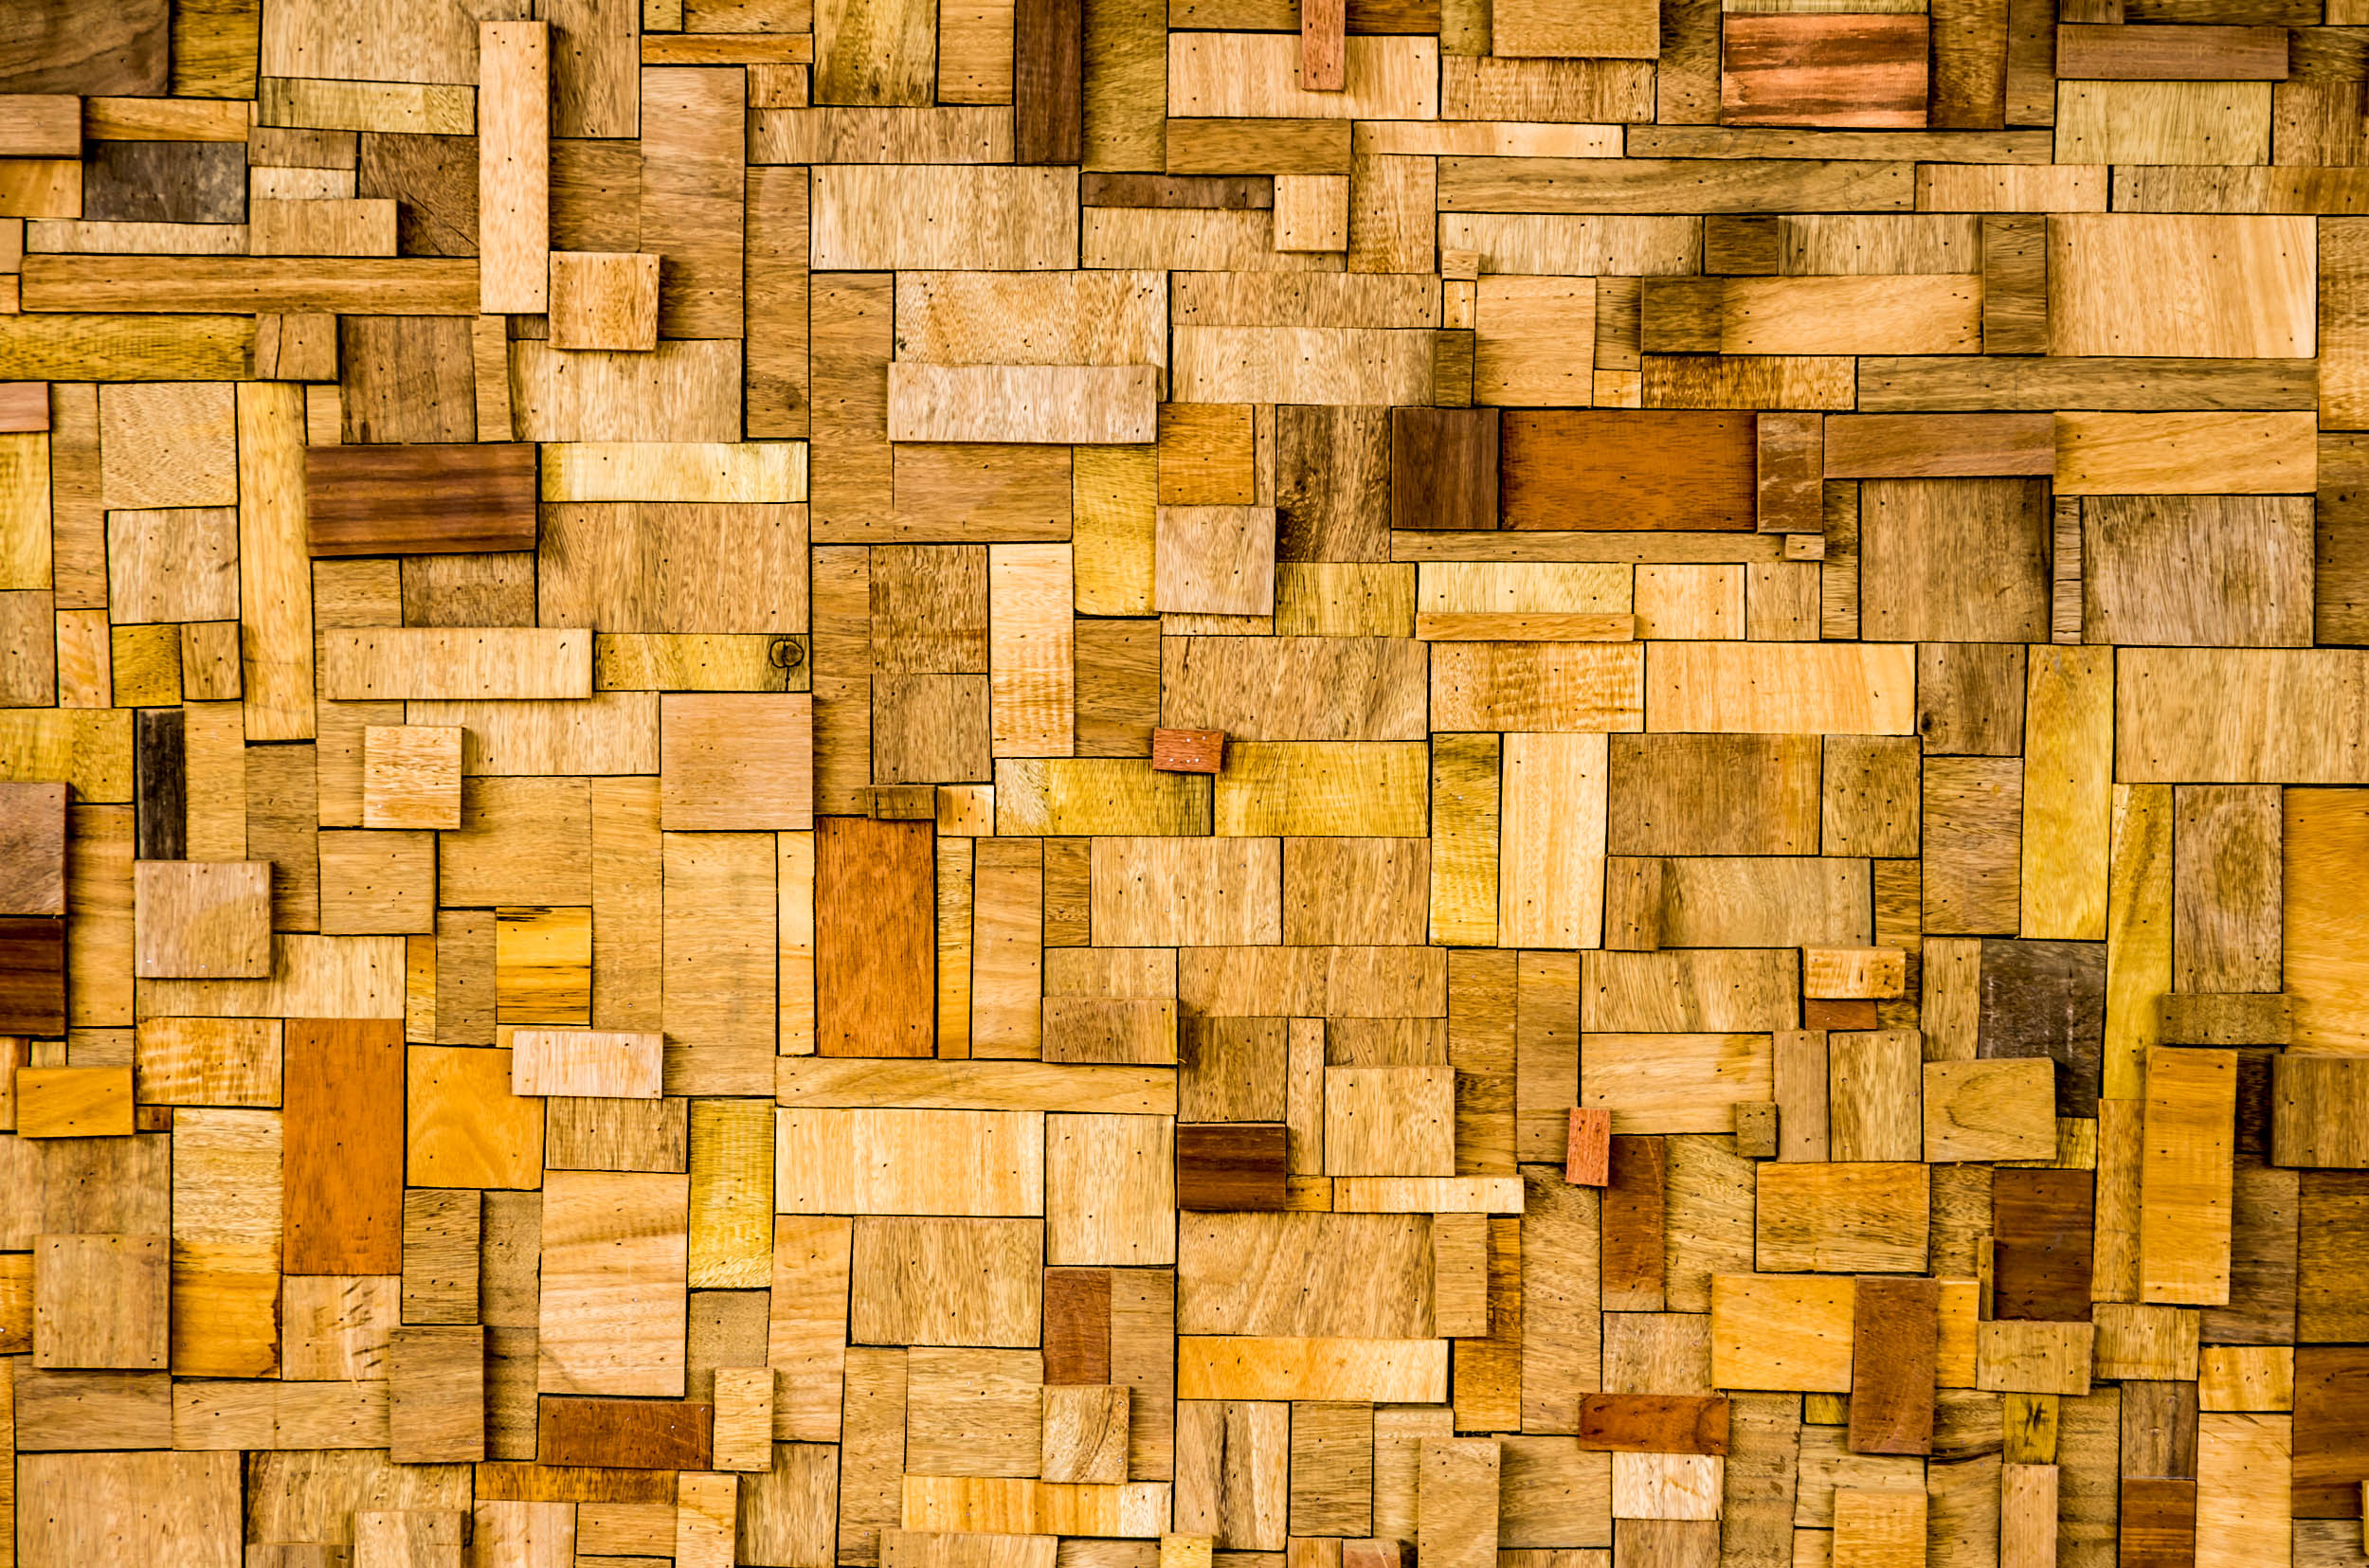 Wood Pattern Based Some Beautiful Wallpapers, Images In High Resolution